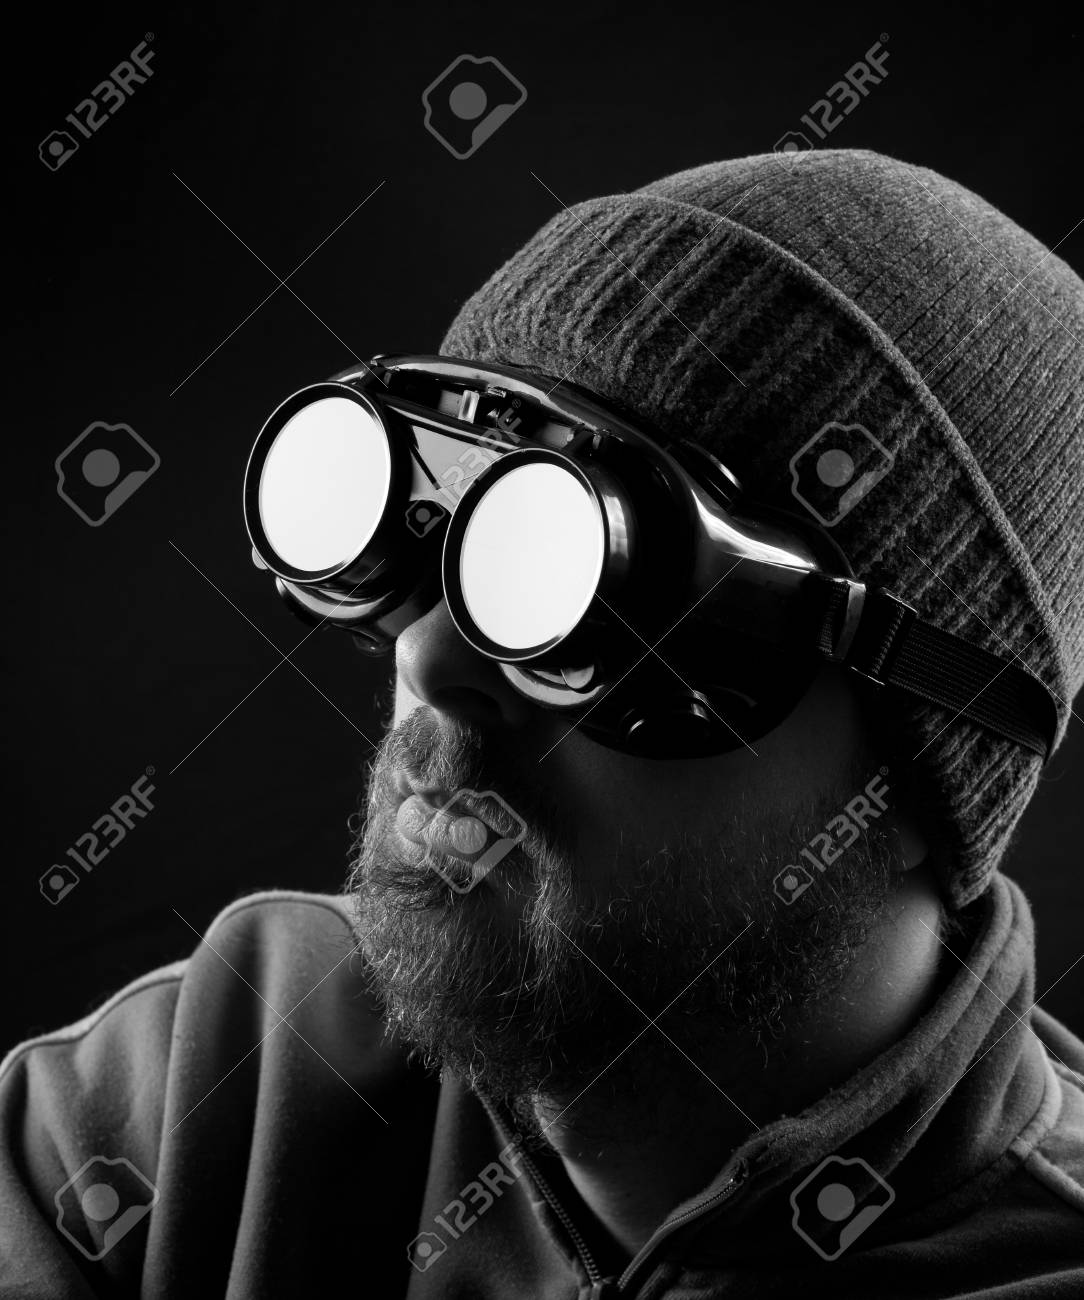 Man wearing protective goggles over black background Stock Photo - 8880892